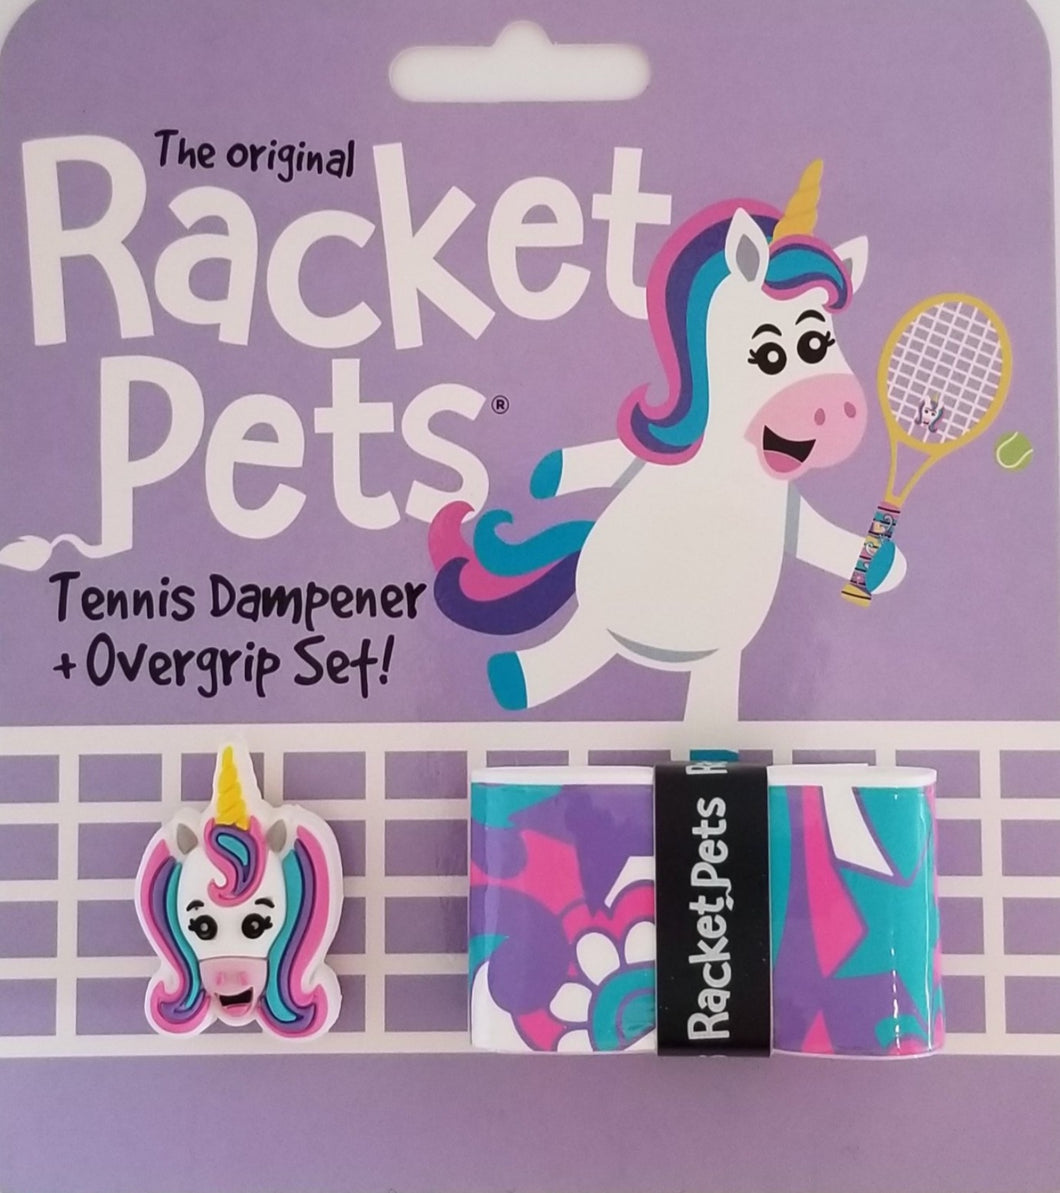 Unicorn - tennis racket dampener overgrip animals